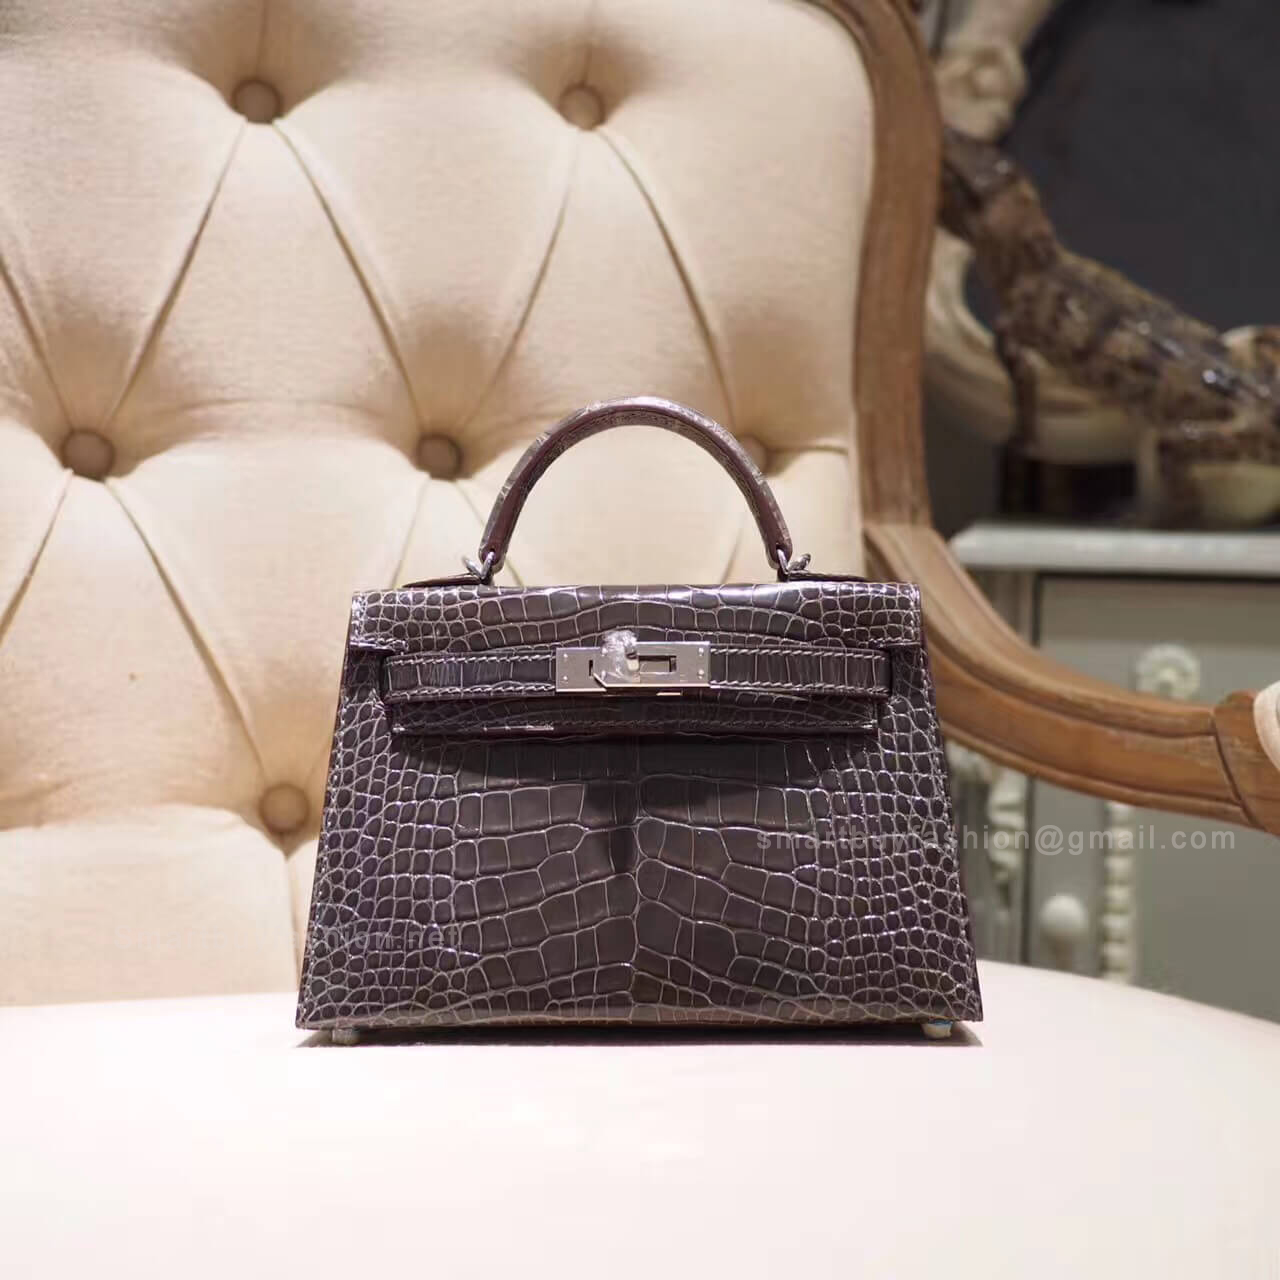 972f53473e Hermes Mini Kelly II Bag in ck88 Graphite Shiny Alligator PHW